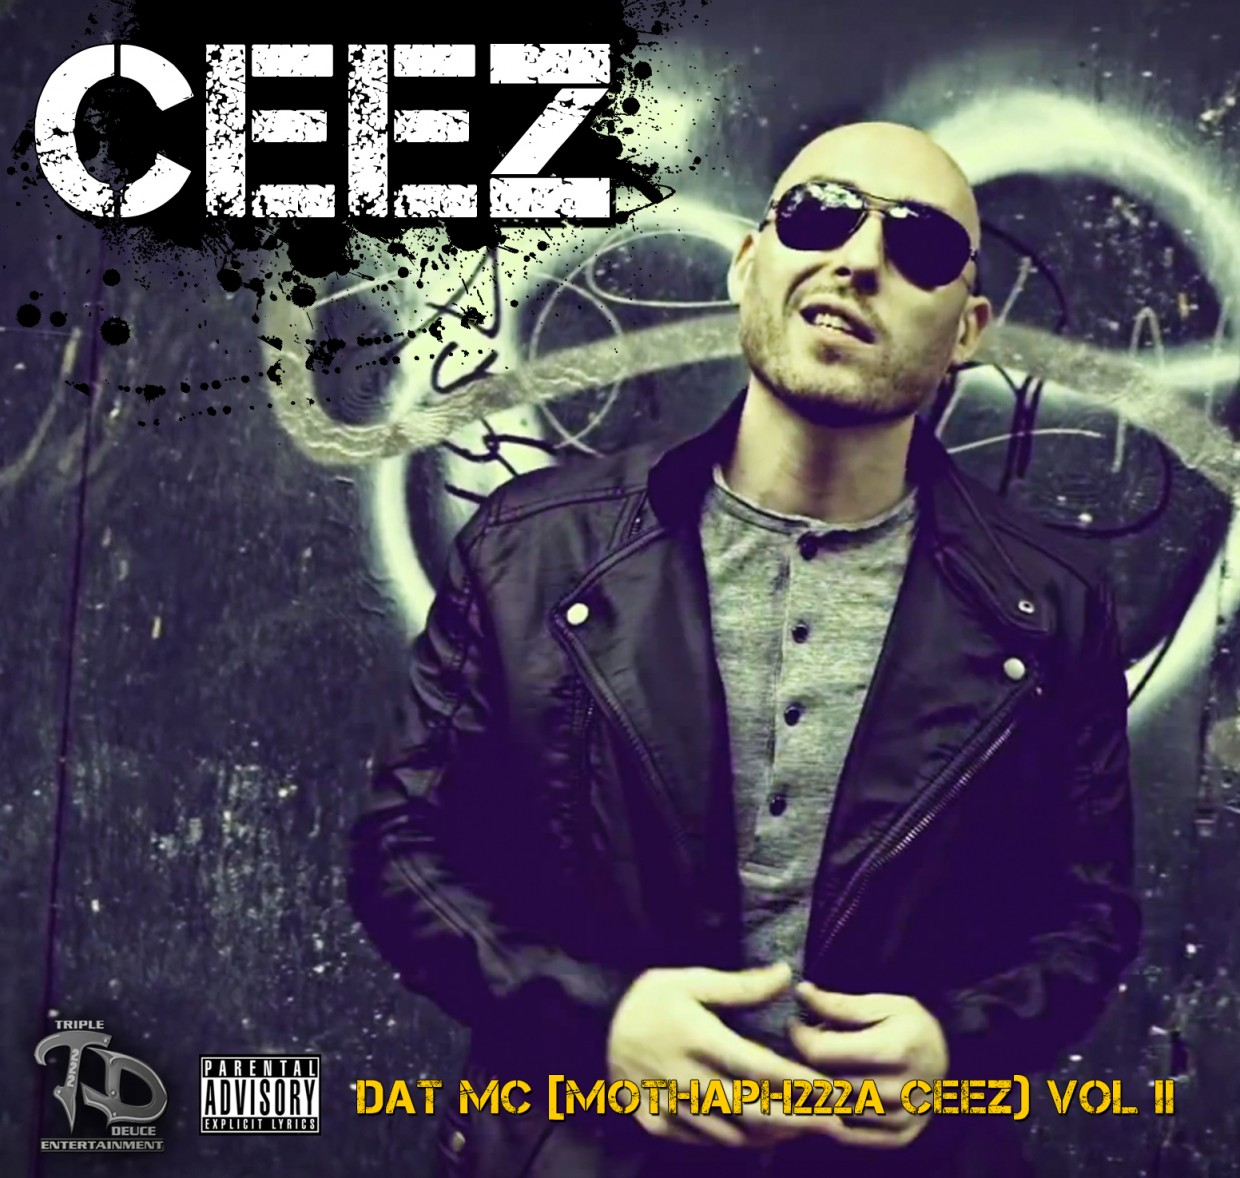 ceez: dat mc (mothaph222a) ceez vol II mixtape